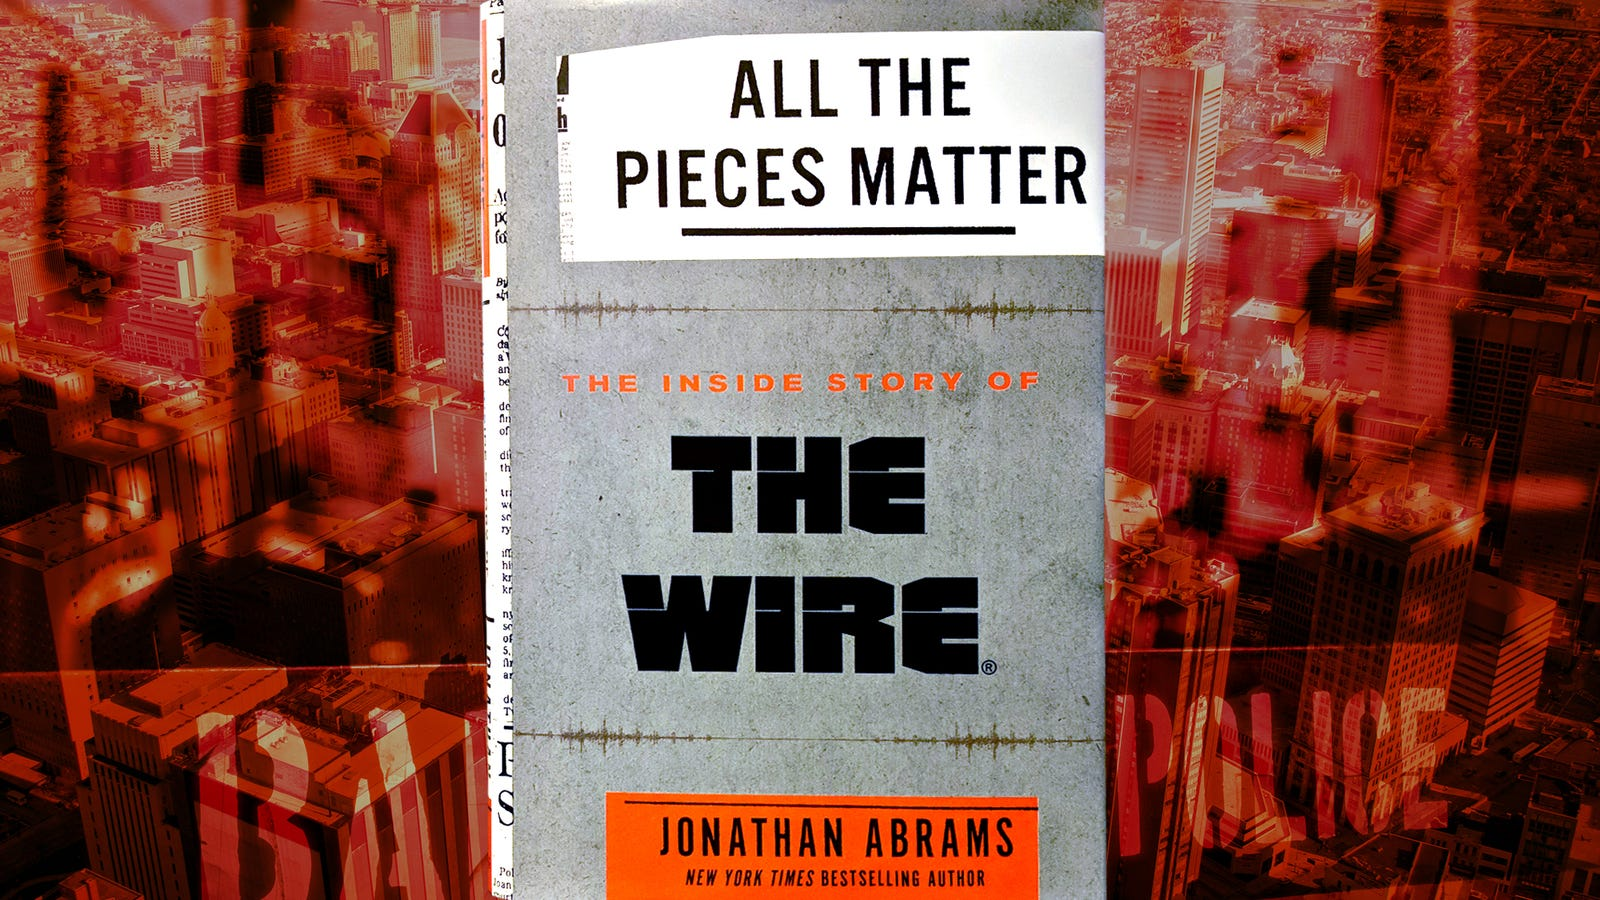 All The Pieces Matter delivers a fascinating oral history of The Wire